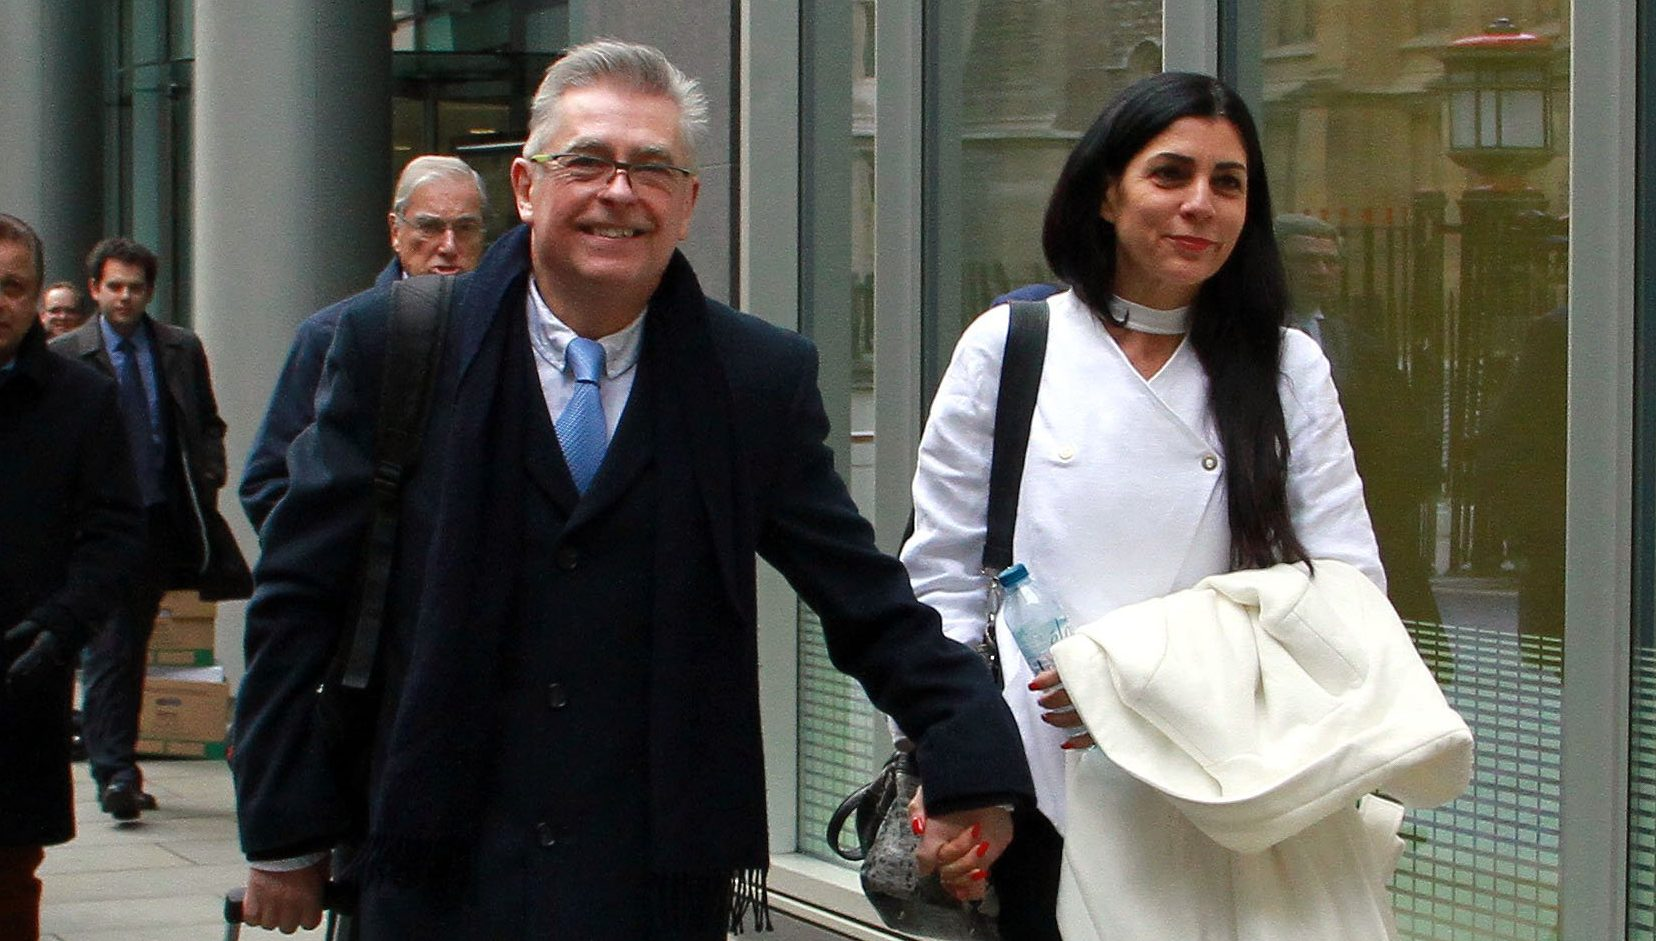 Champion News: 07948286566/07914583378 news@championnews.co.uk Picture shows former BA captain Chris Burgess and wife Cleide Burgess outside the High Court in London.